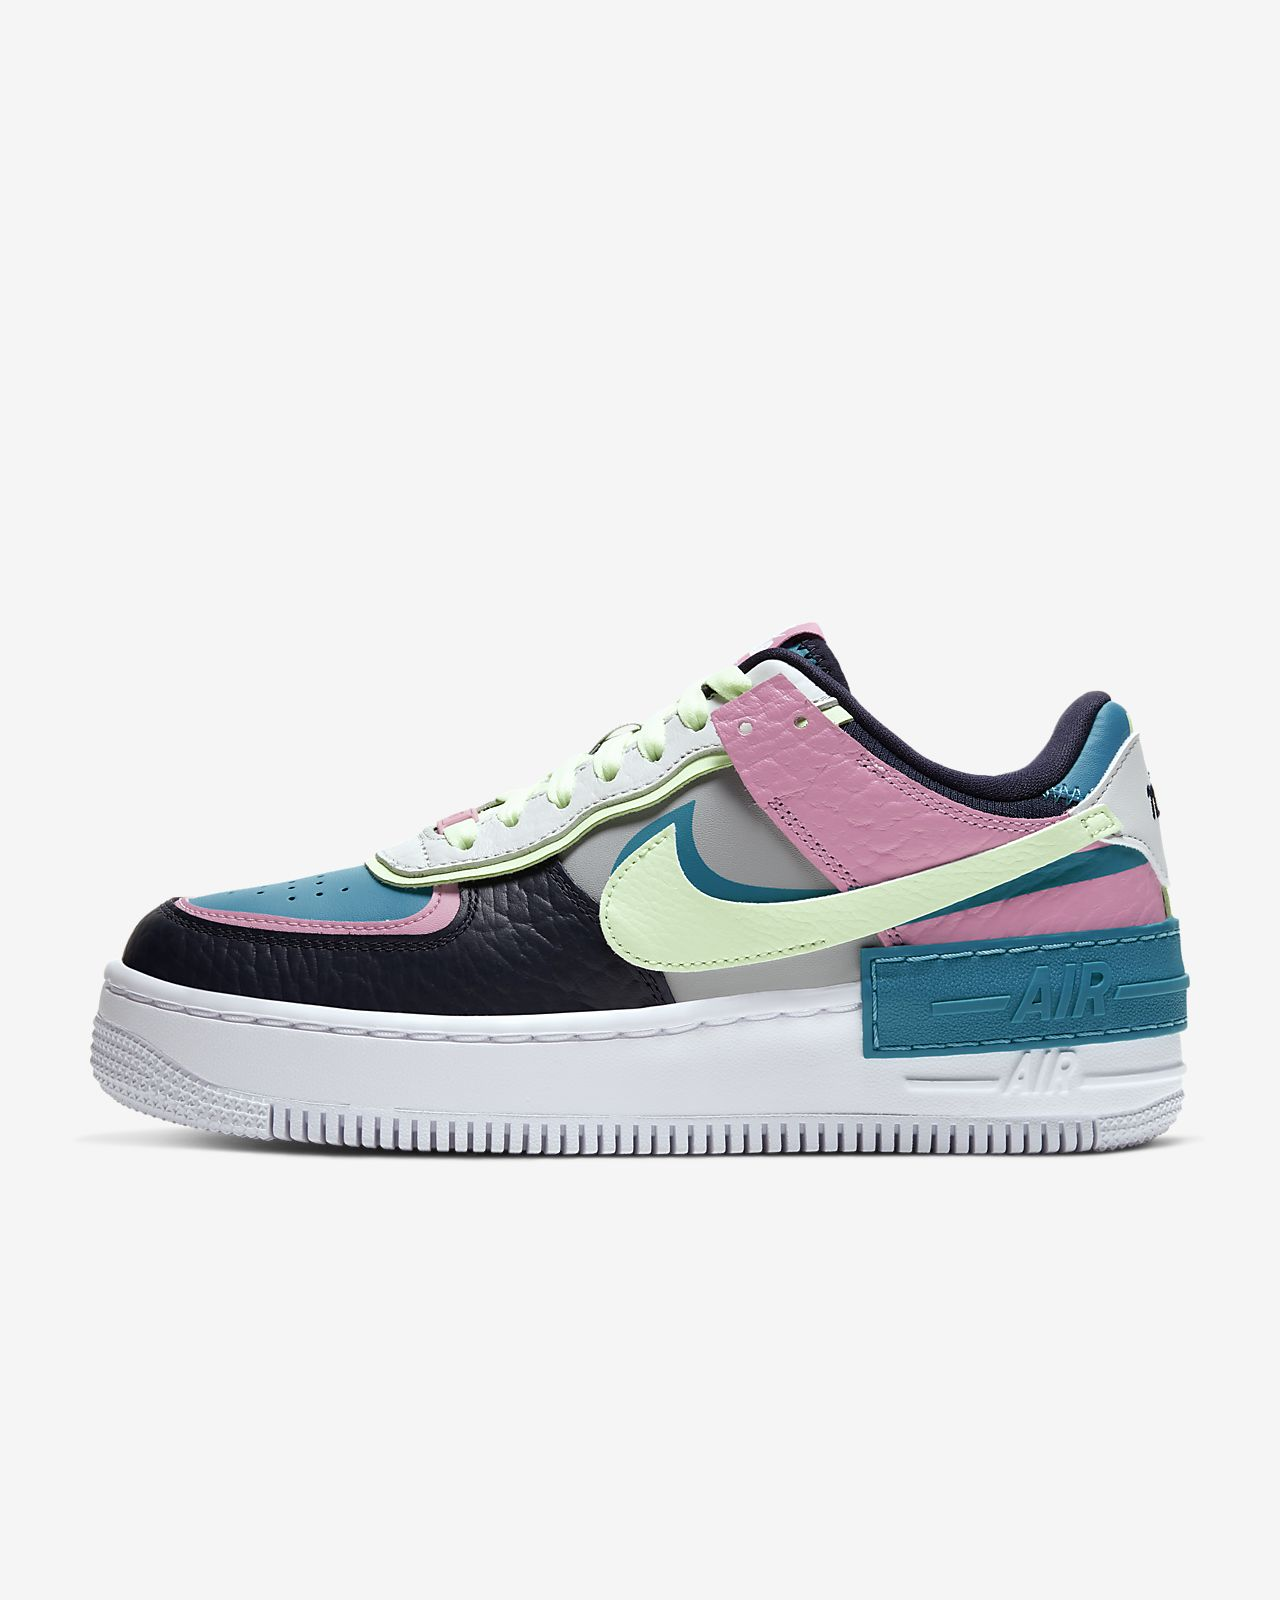 Chaussure Nike AF1 Shadow SE pour Femme